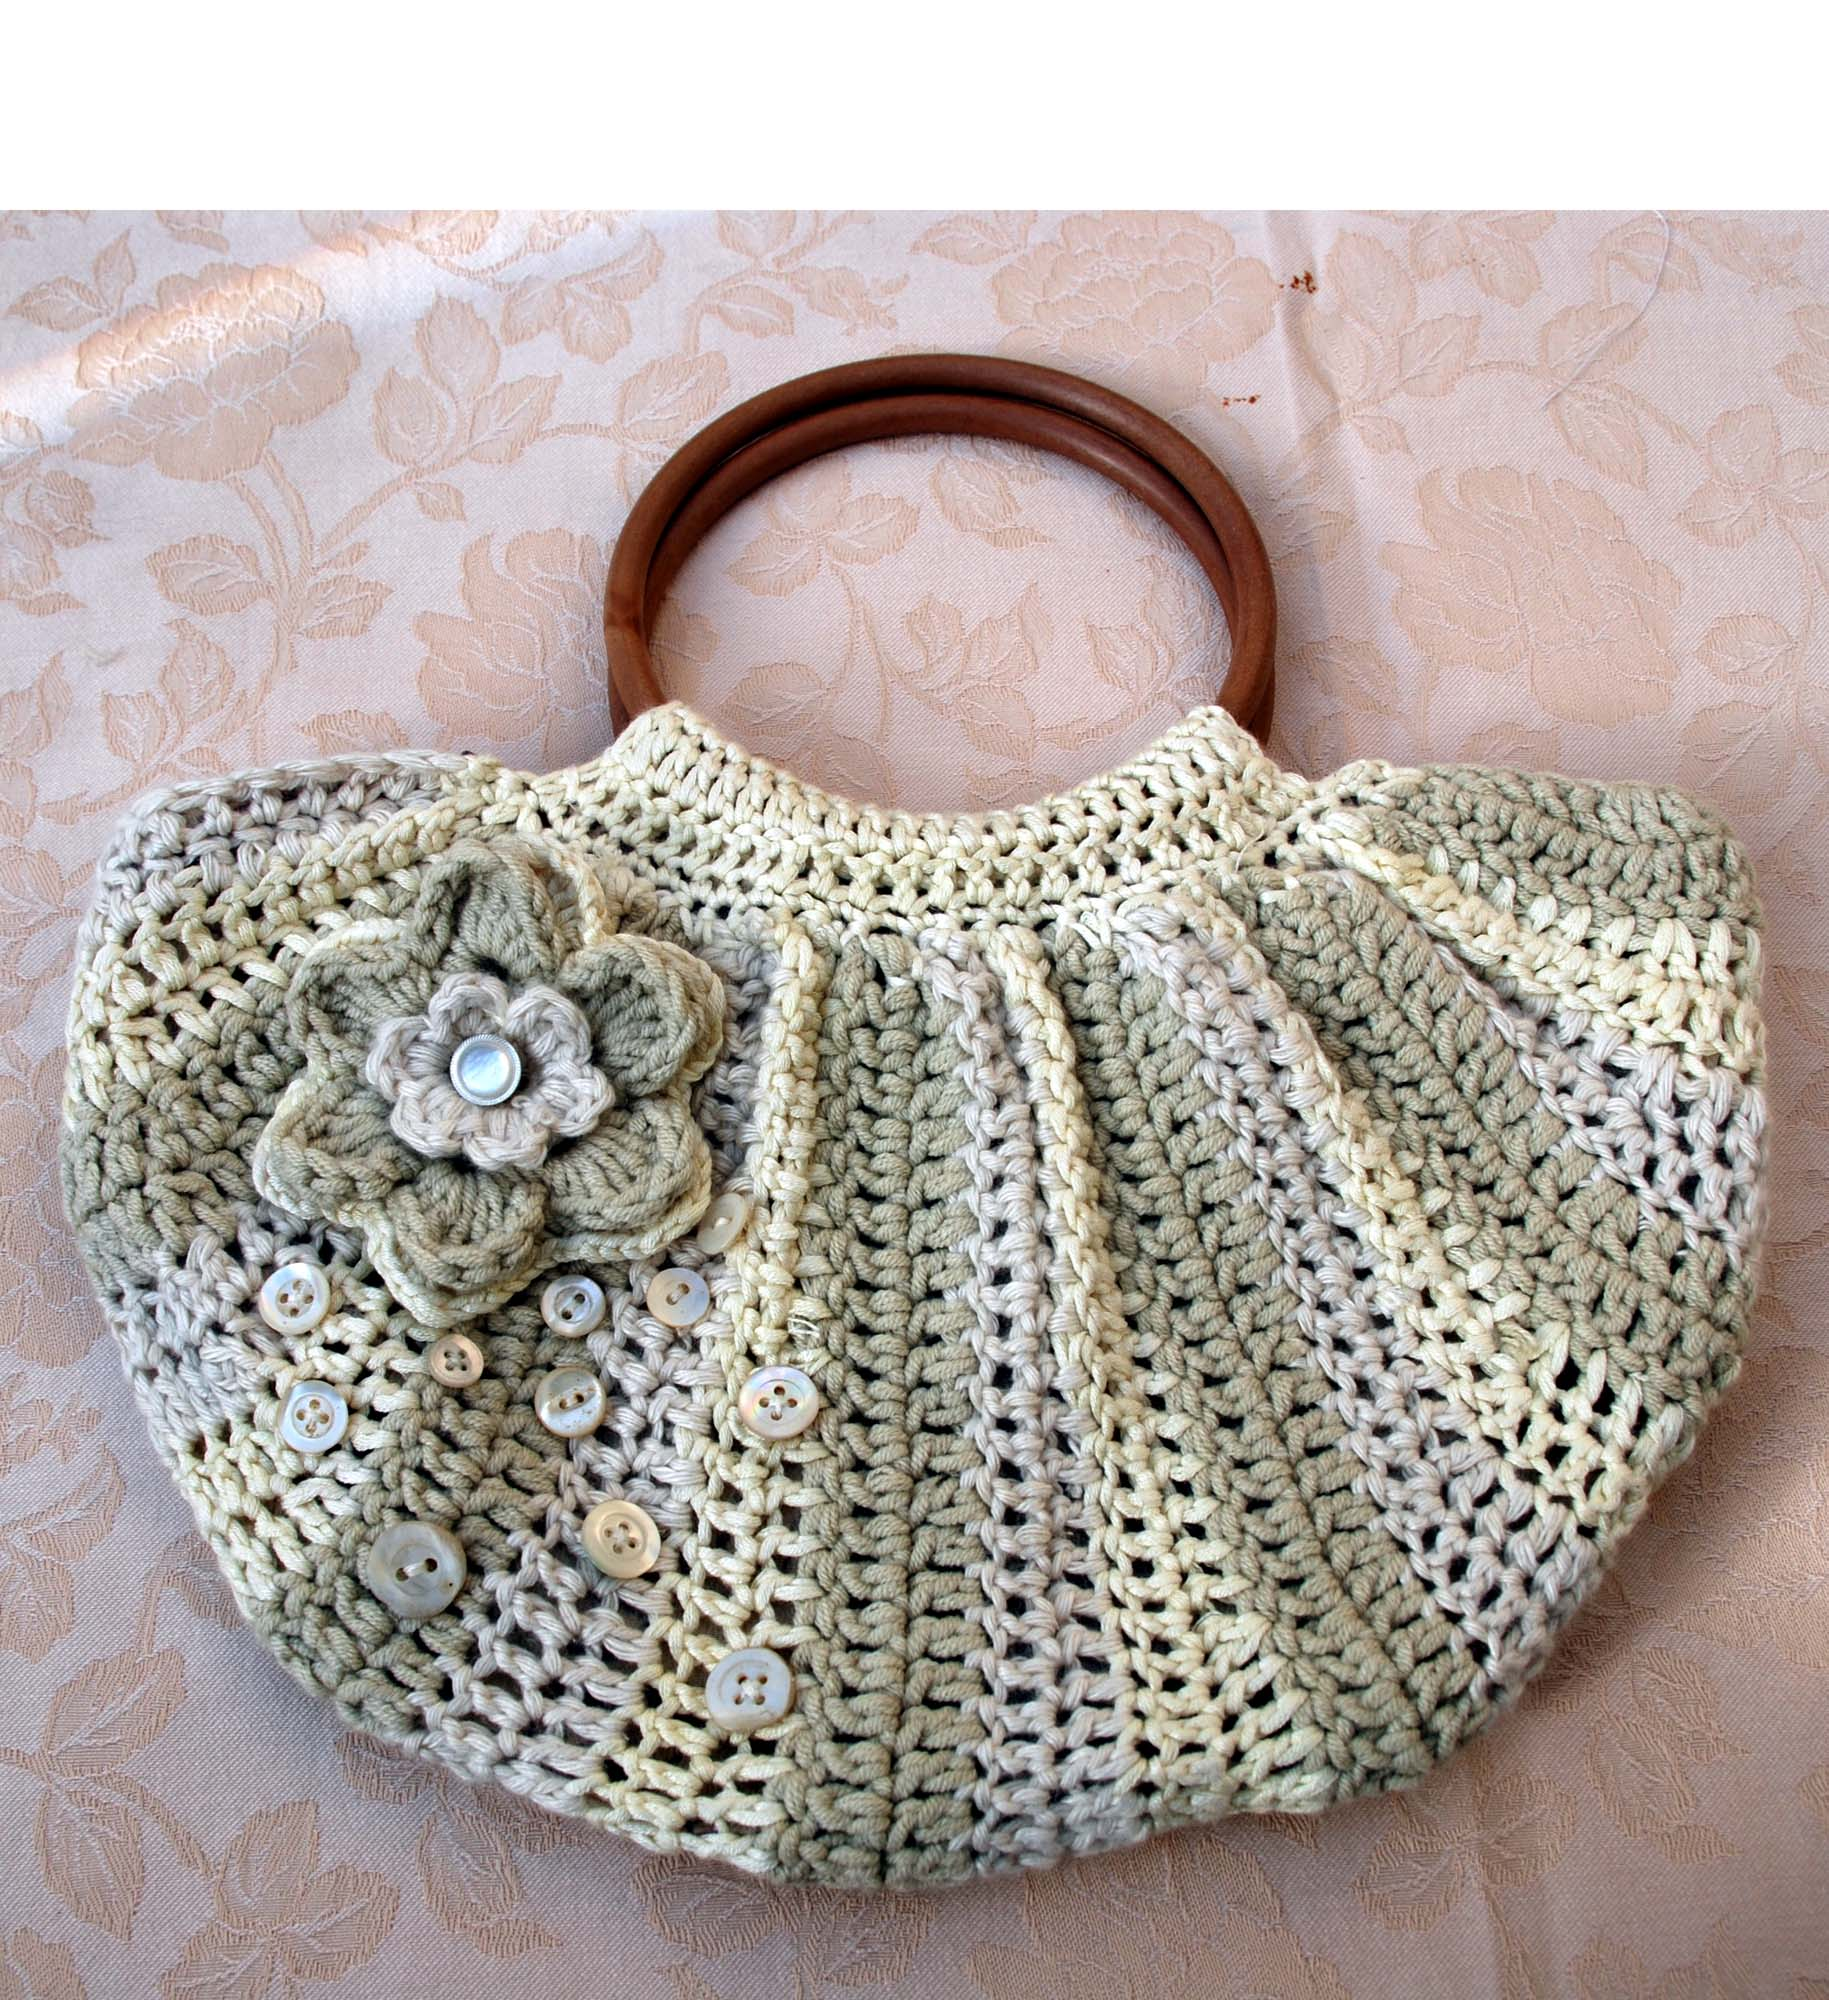 Crochet Handbags : Pretty crochet bag with silk and pearl buttons